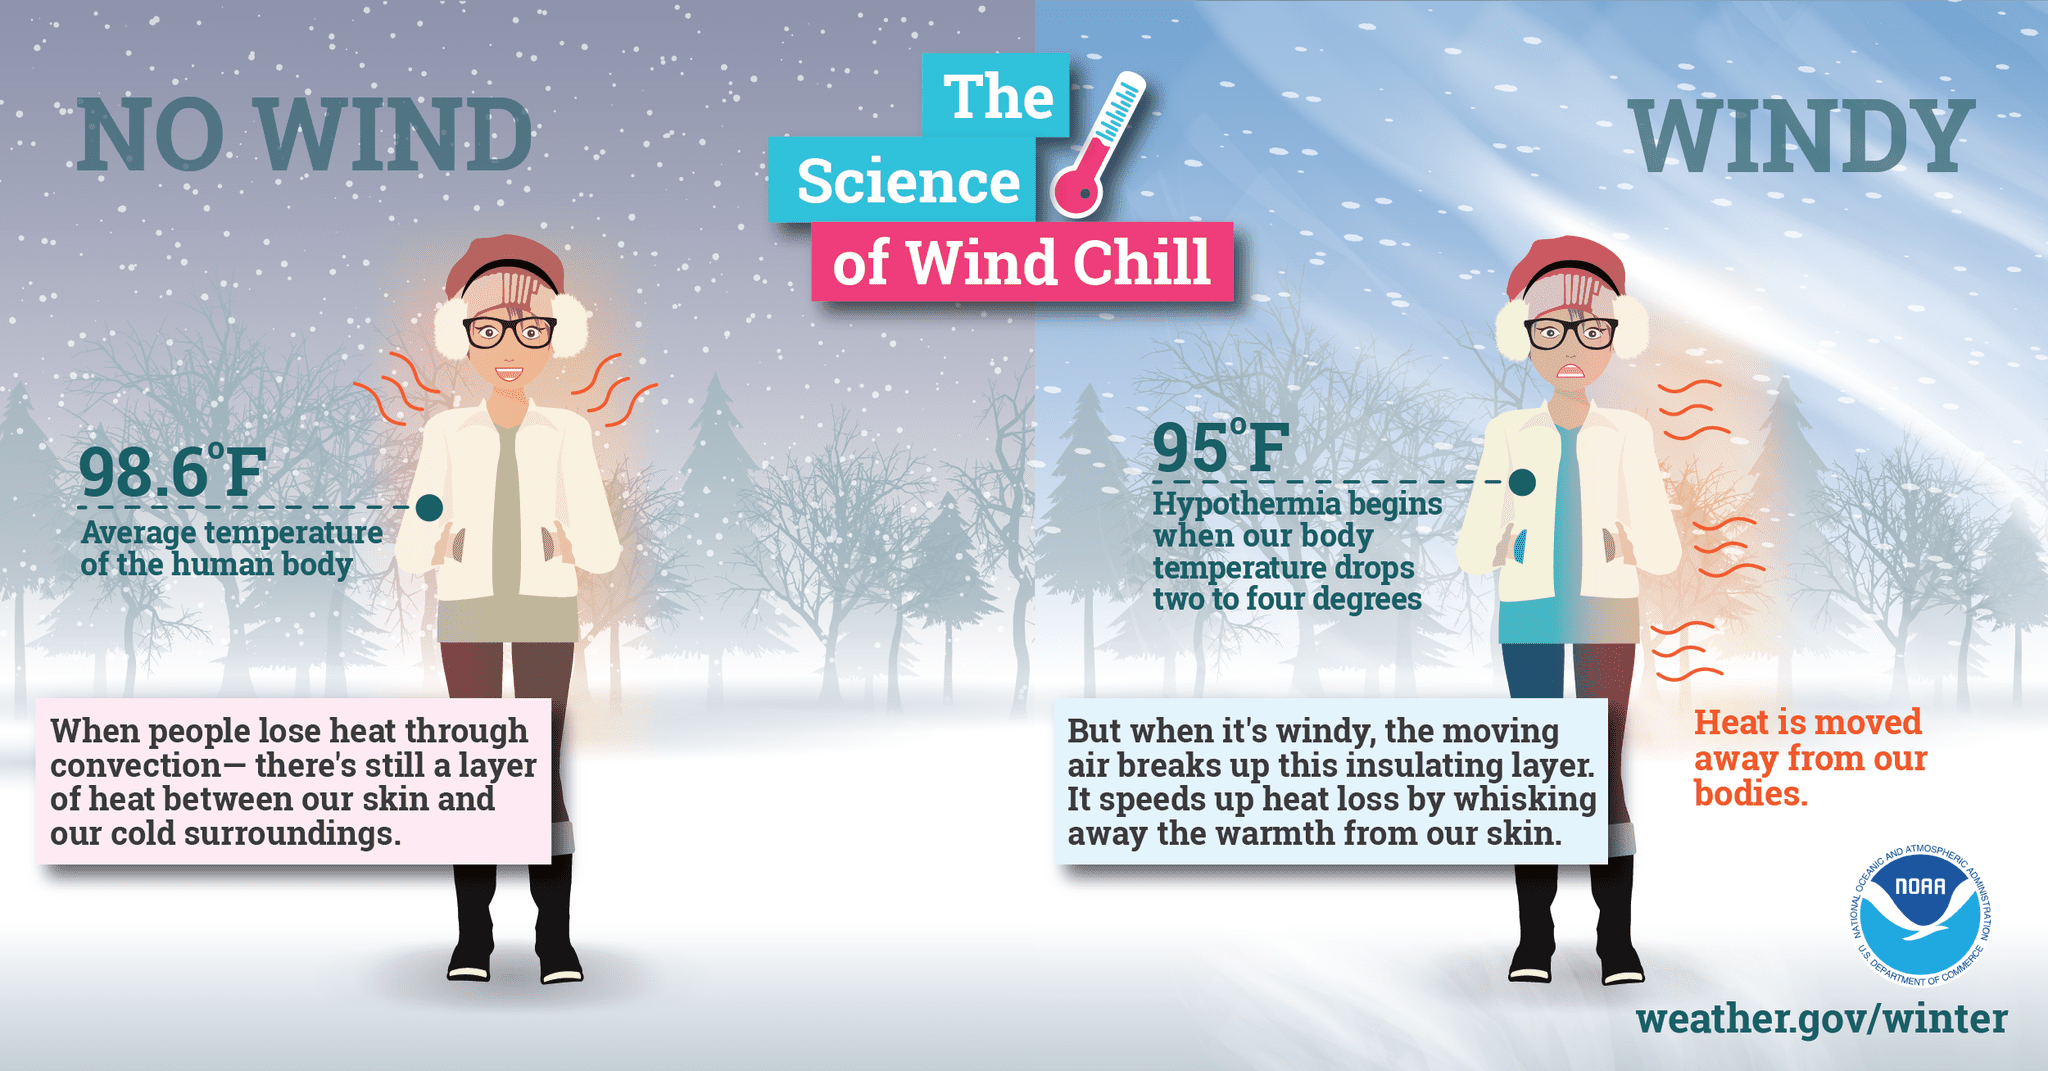 Wind chill values below minus 25 degrees can lead to frost bite in less than 30 minutes.